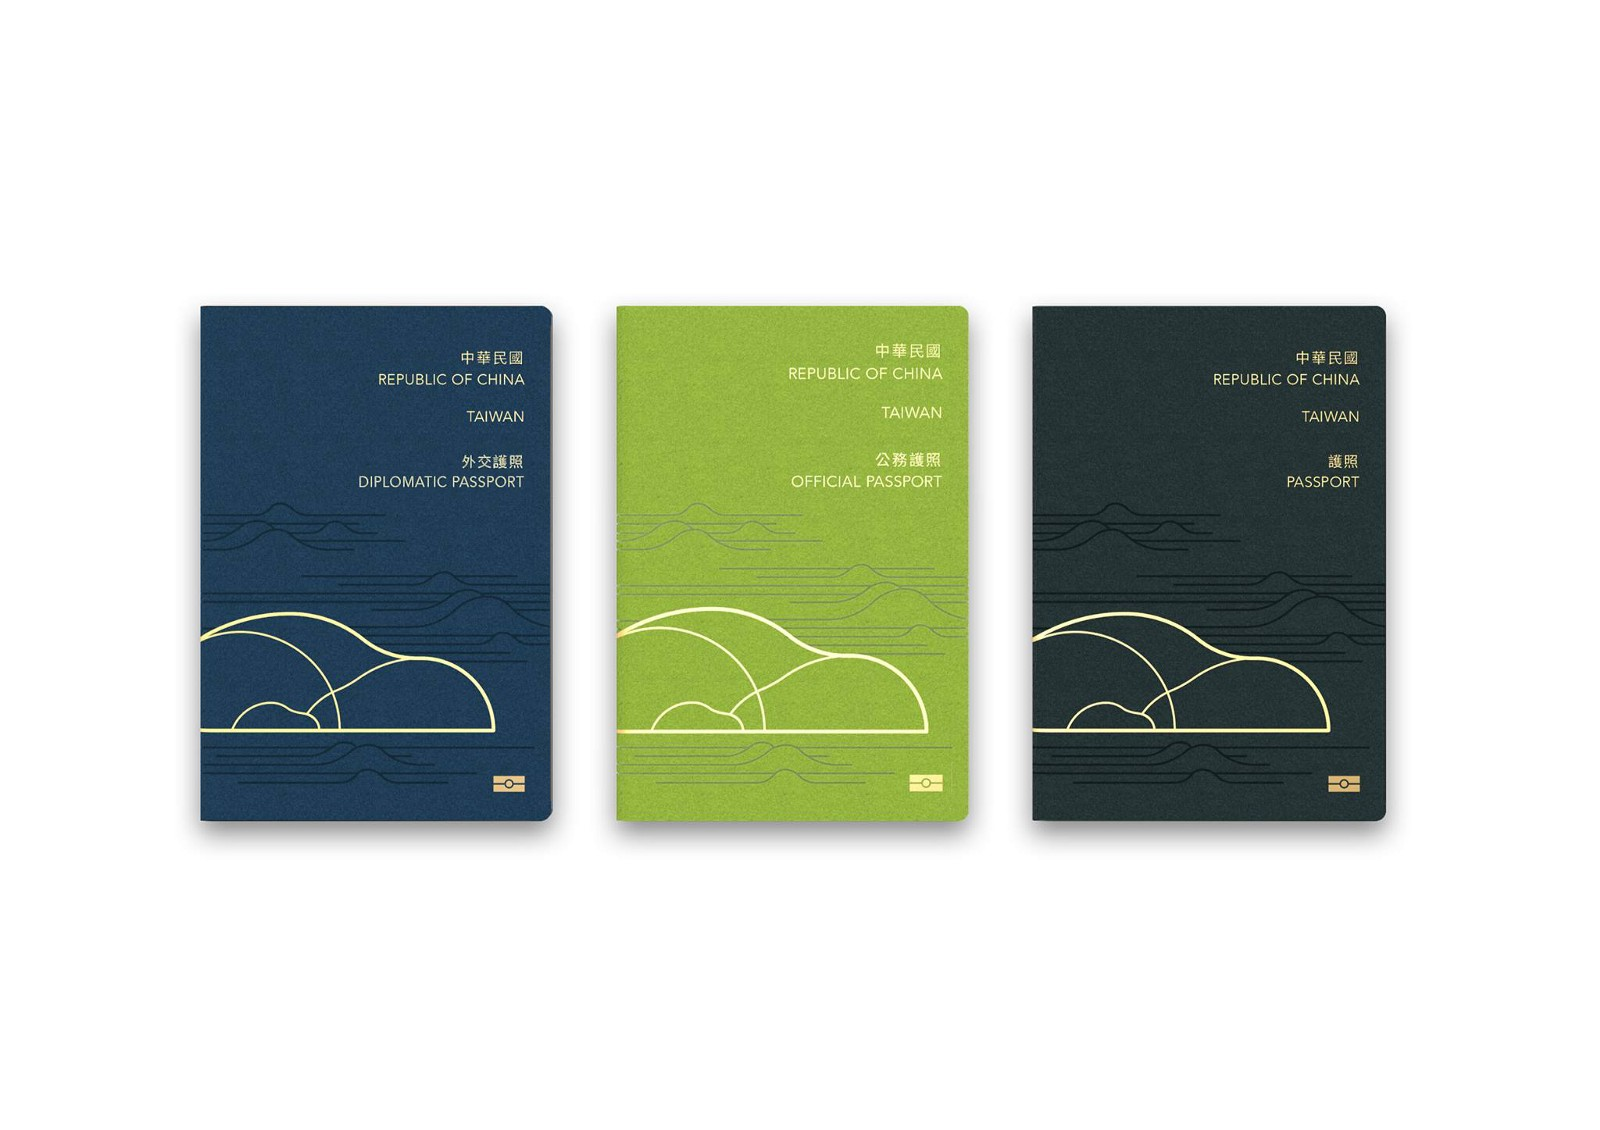 Taiwan ReDesign: Passport